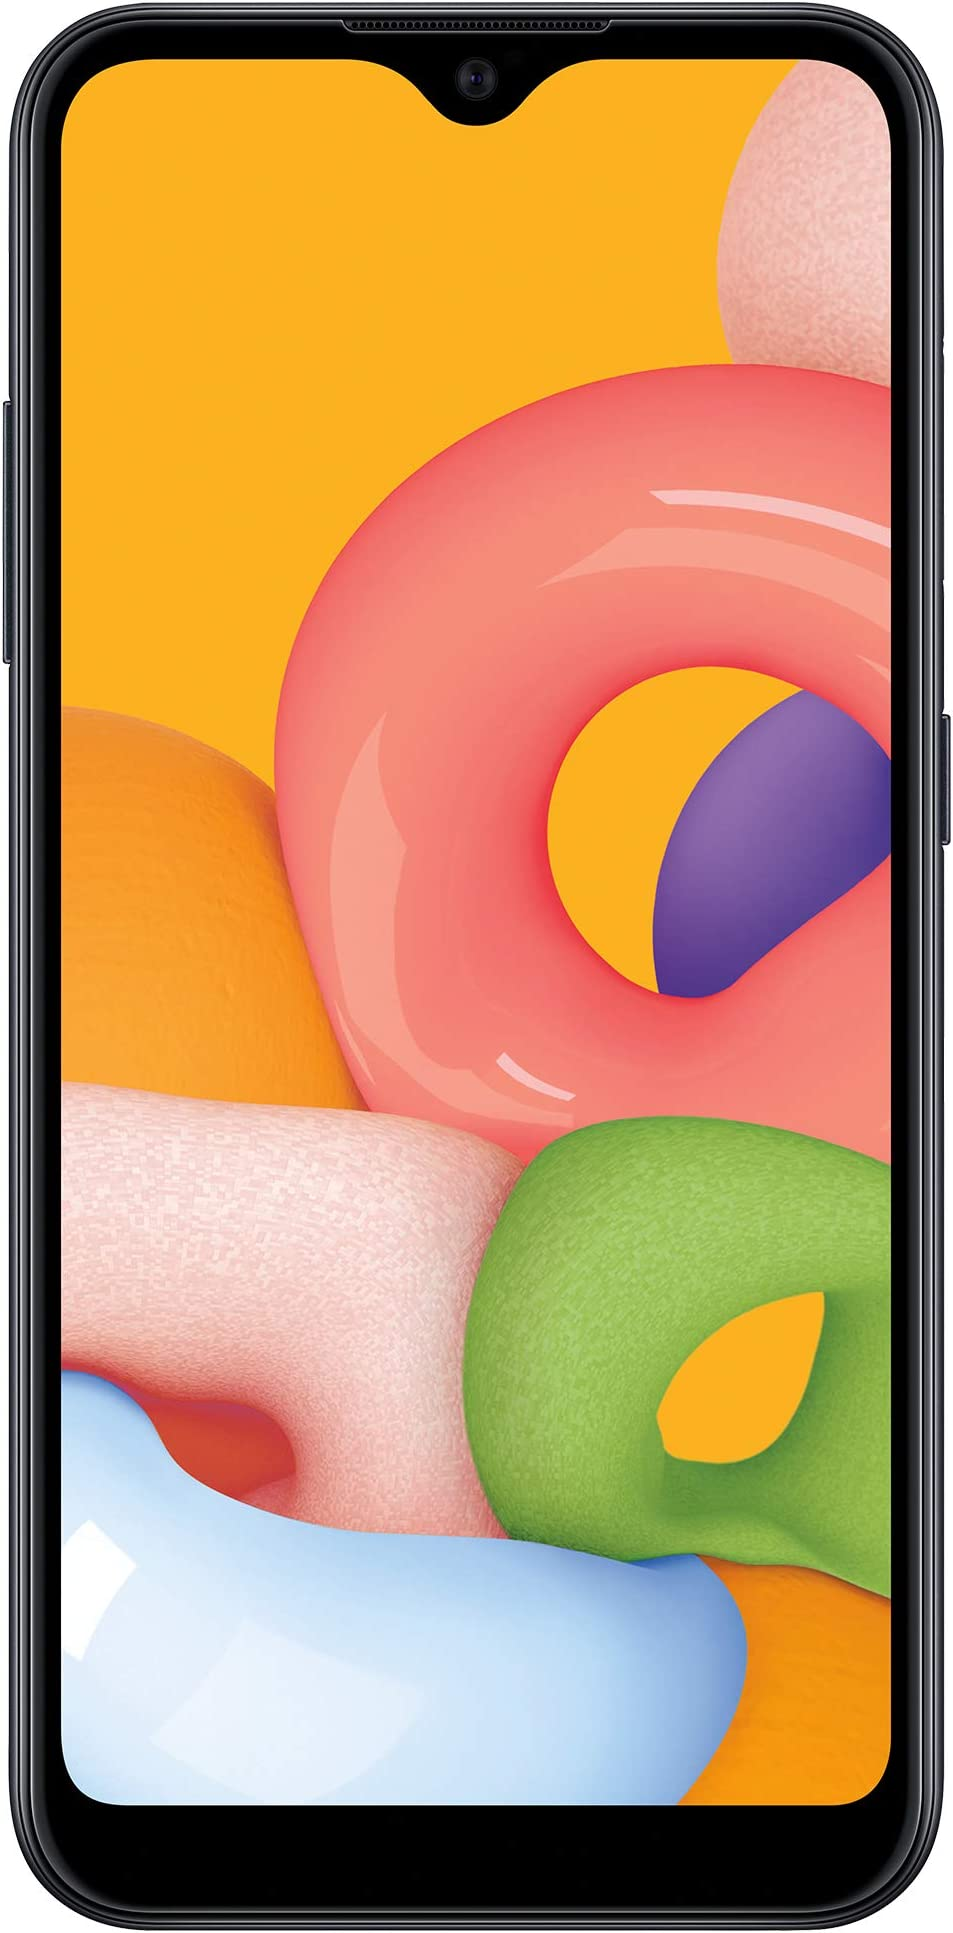 (Free $20 Airtime Activation Promotion) Net10 Samsung Galaxy A01 4G LTE Prepaid Smartphone - Black - 16GB - Sim Card Included -CDMA